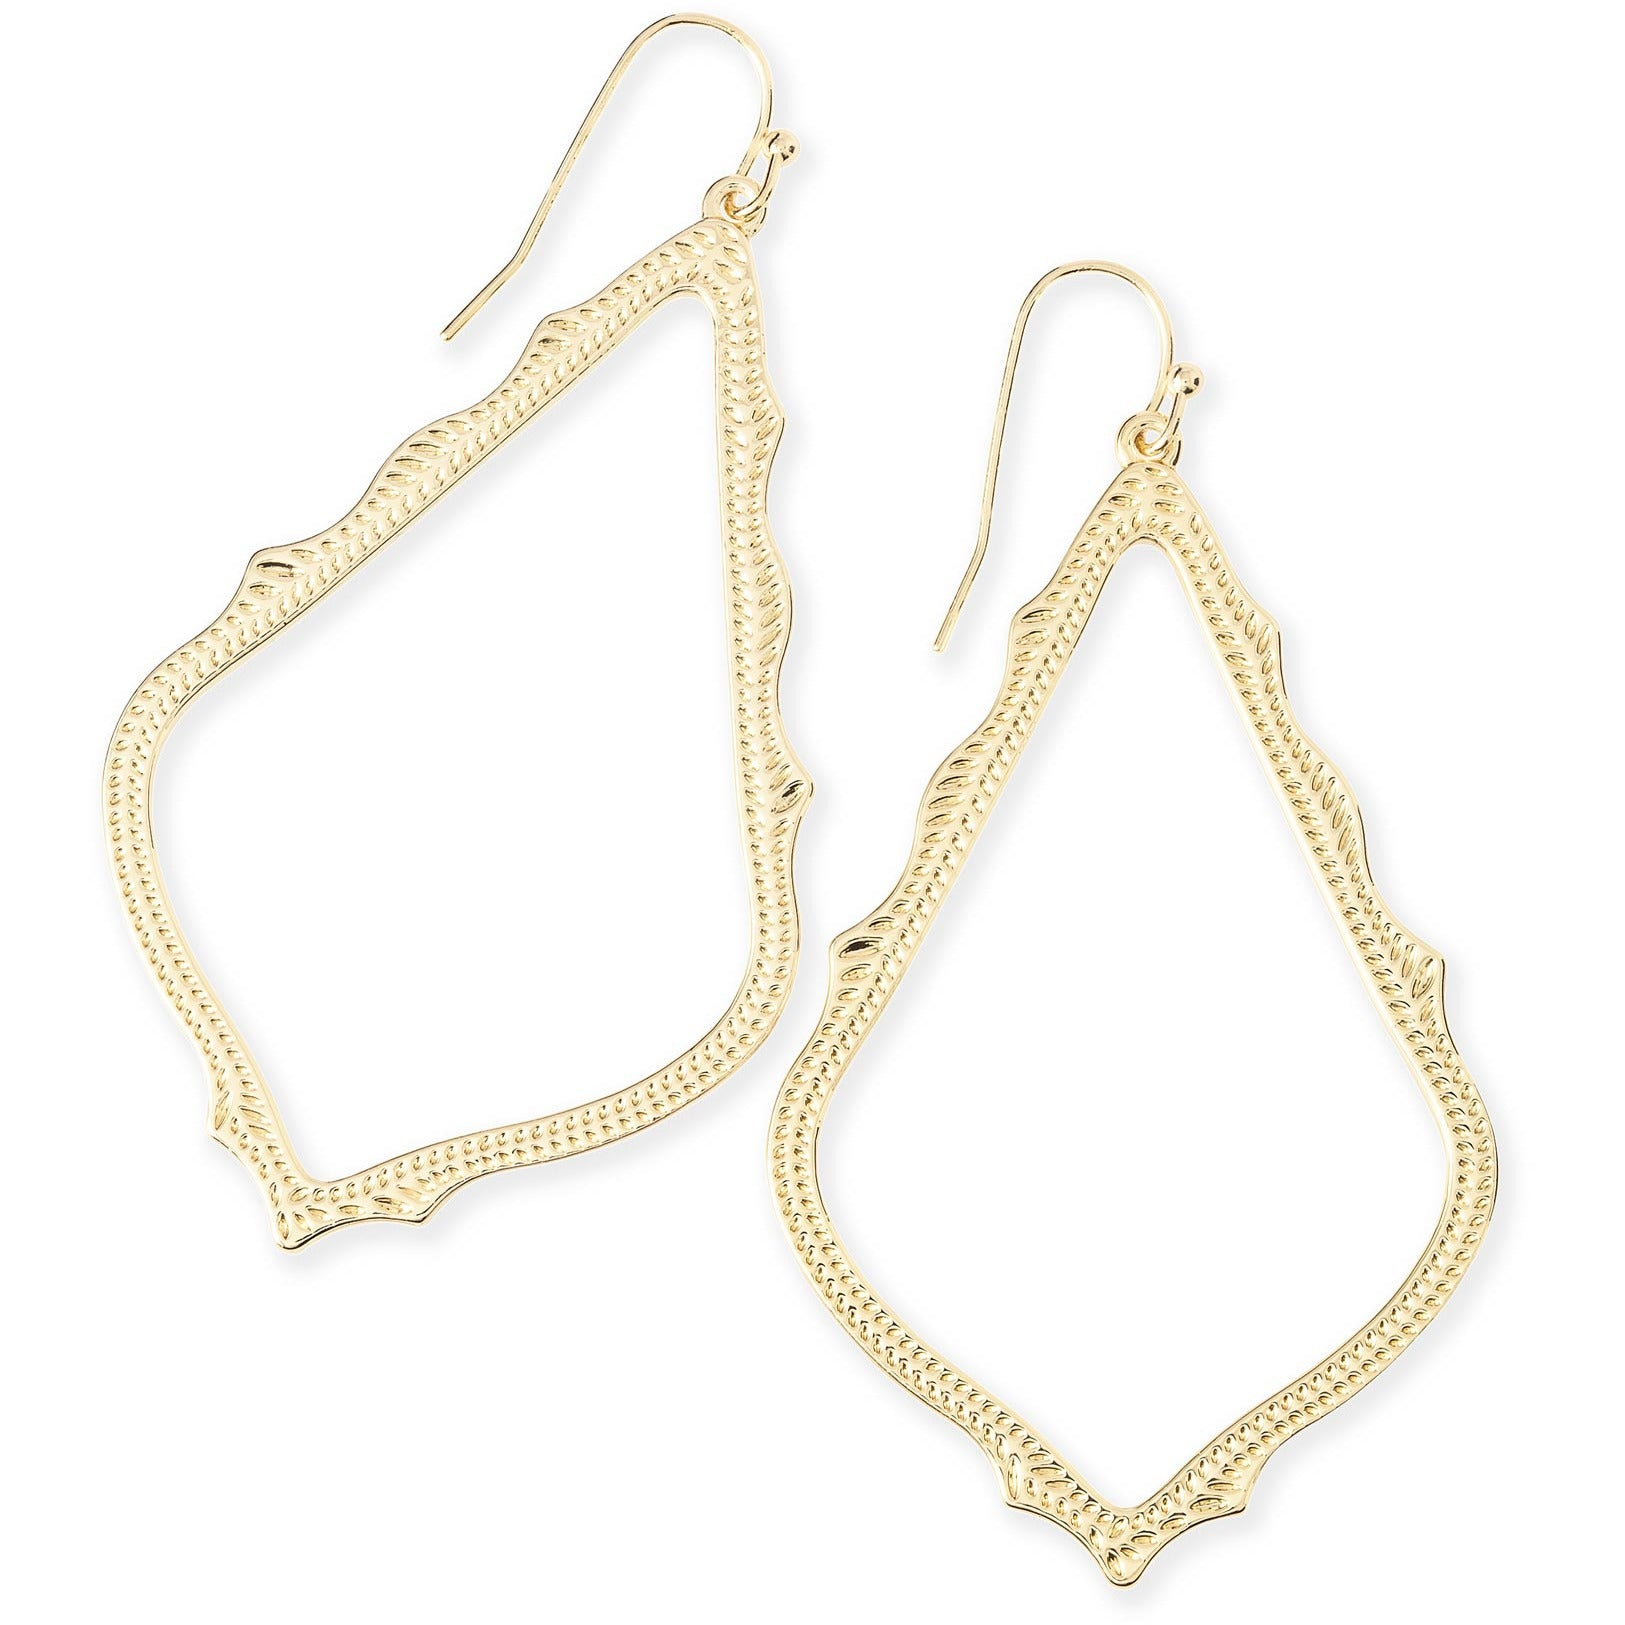 Kendra Scott - Sophee Drop Earrings in Gold, Front View